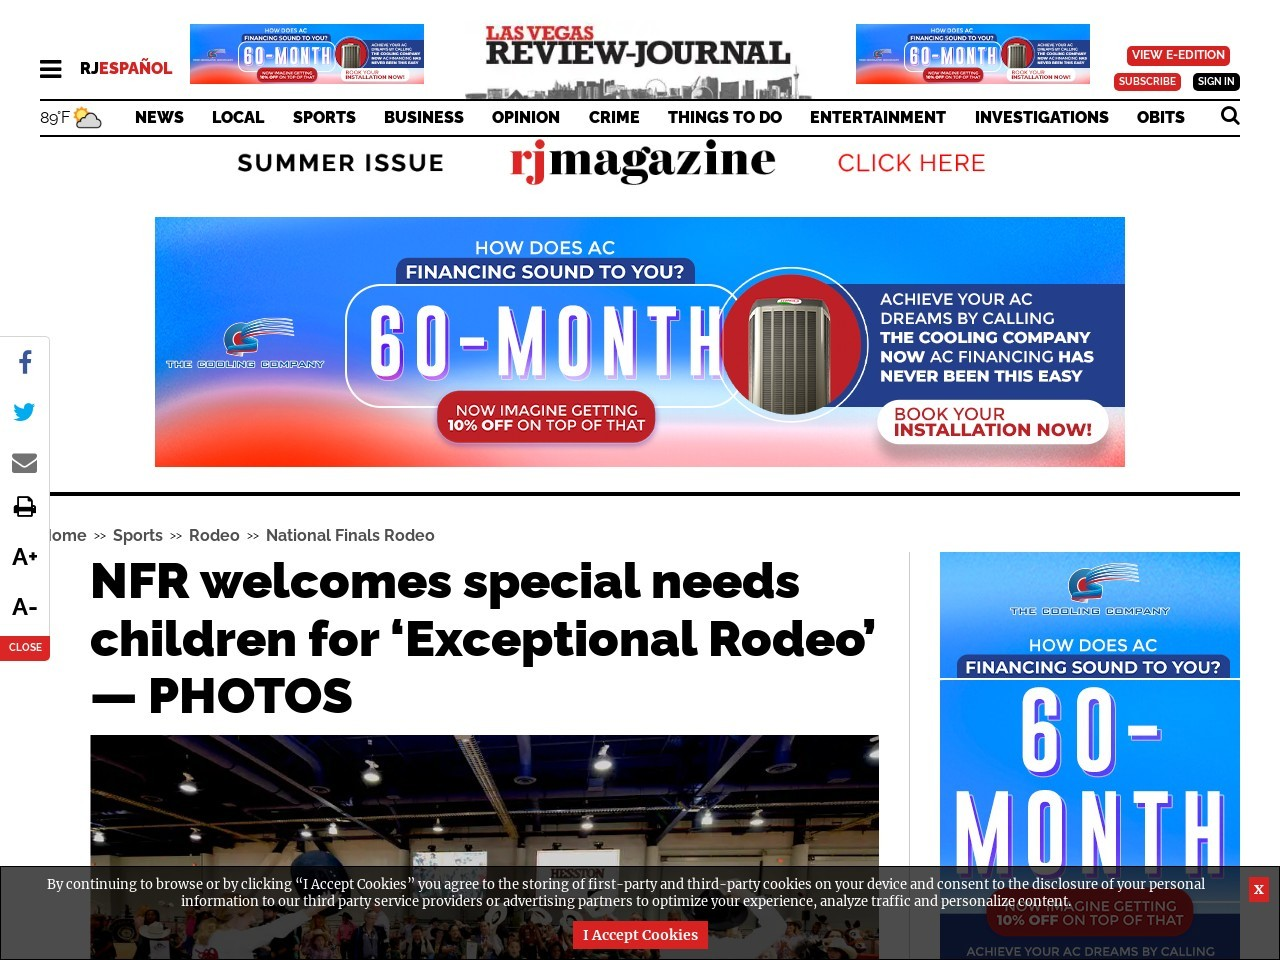 NFR welcomes special needs children for 'Exceptional Rodeo' — PHOTOS